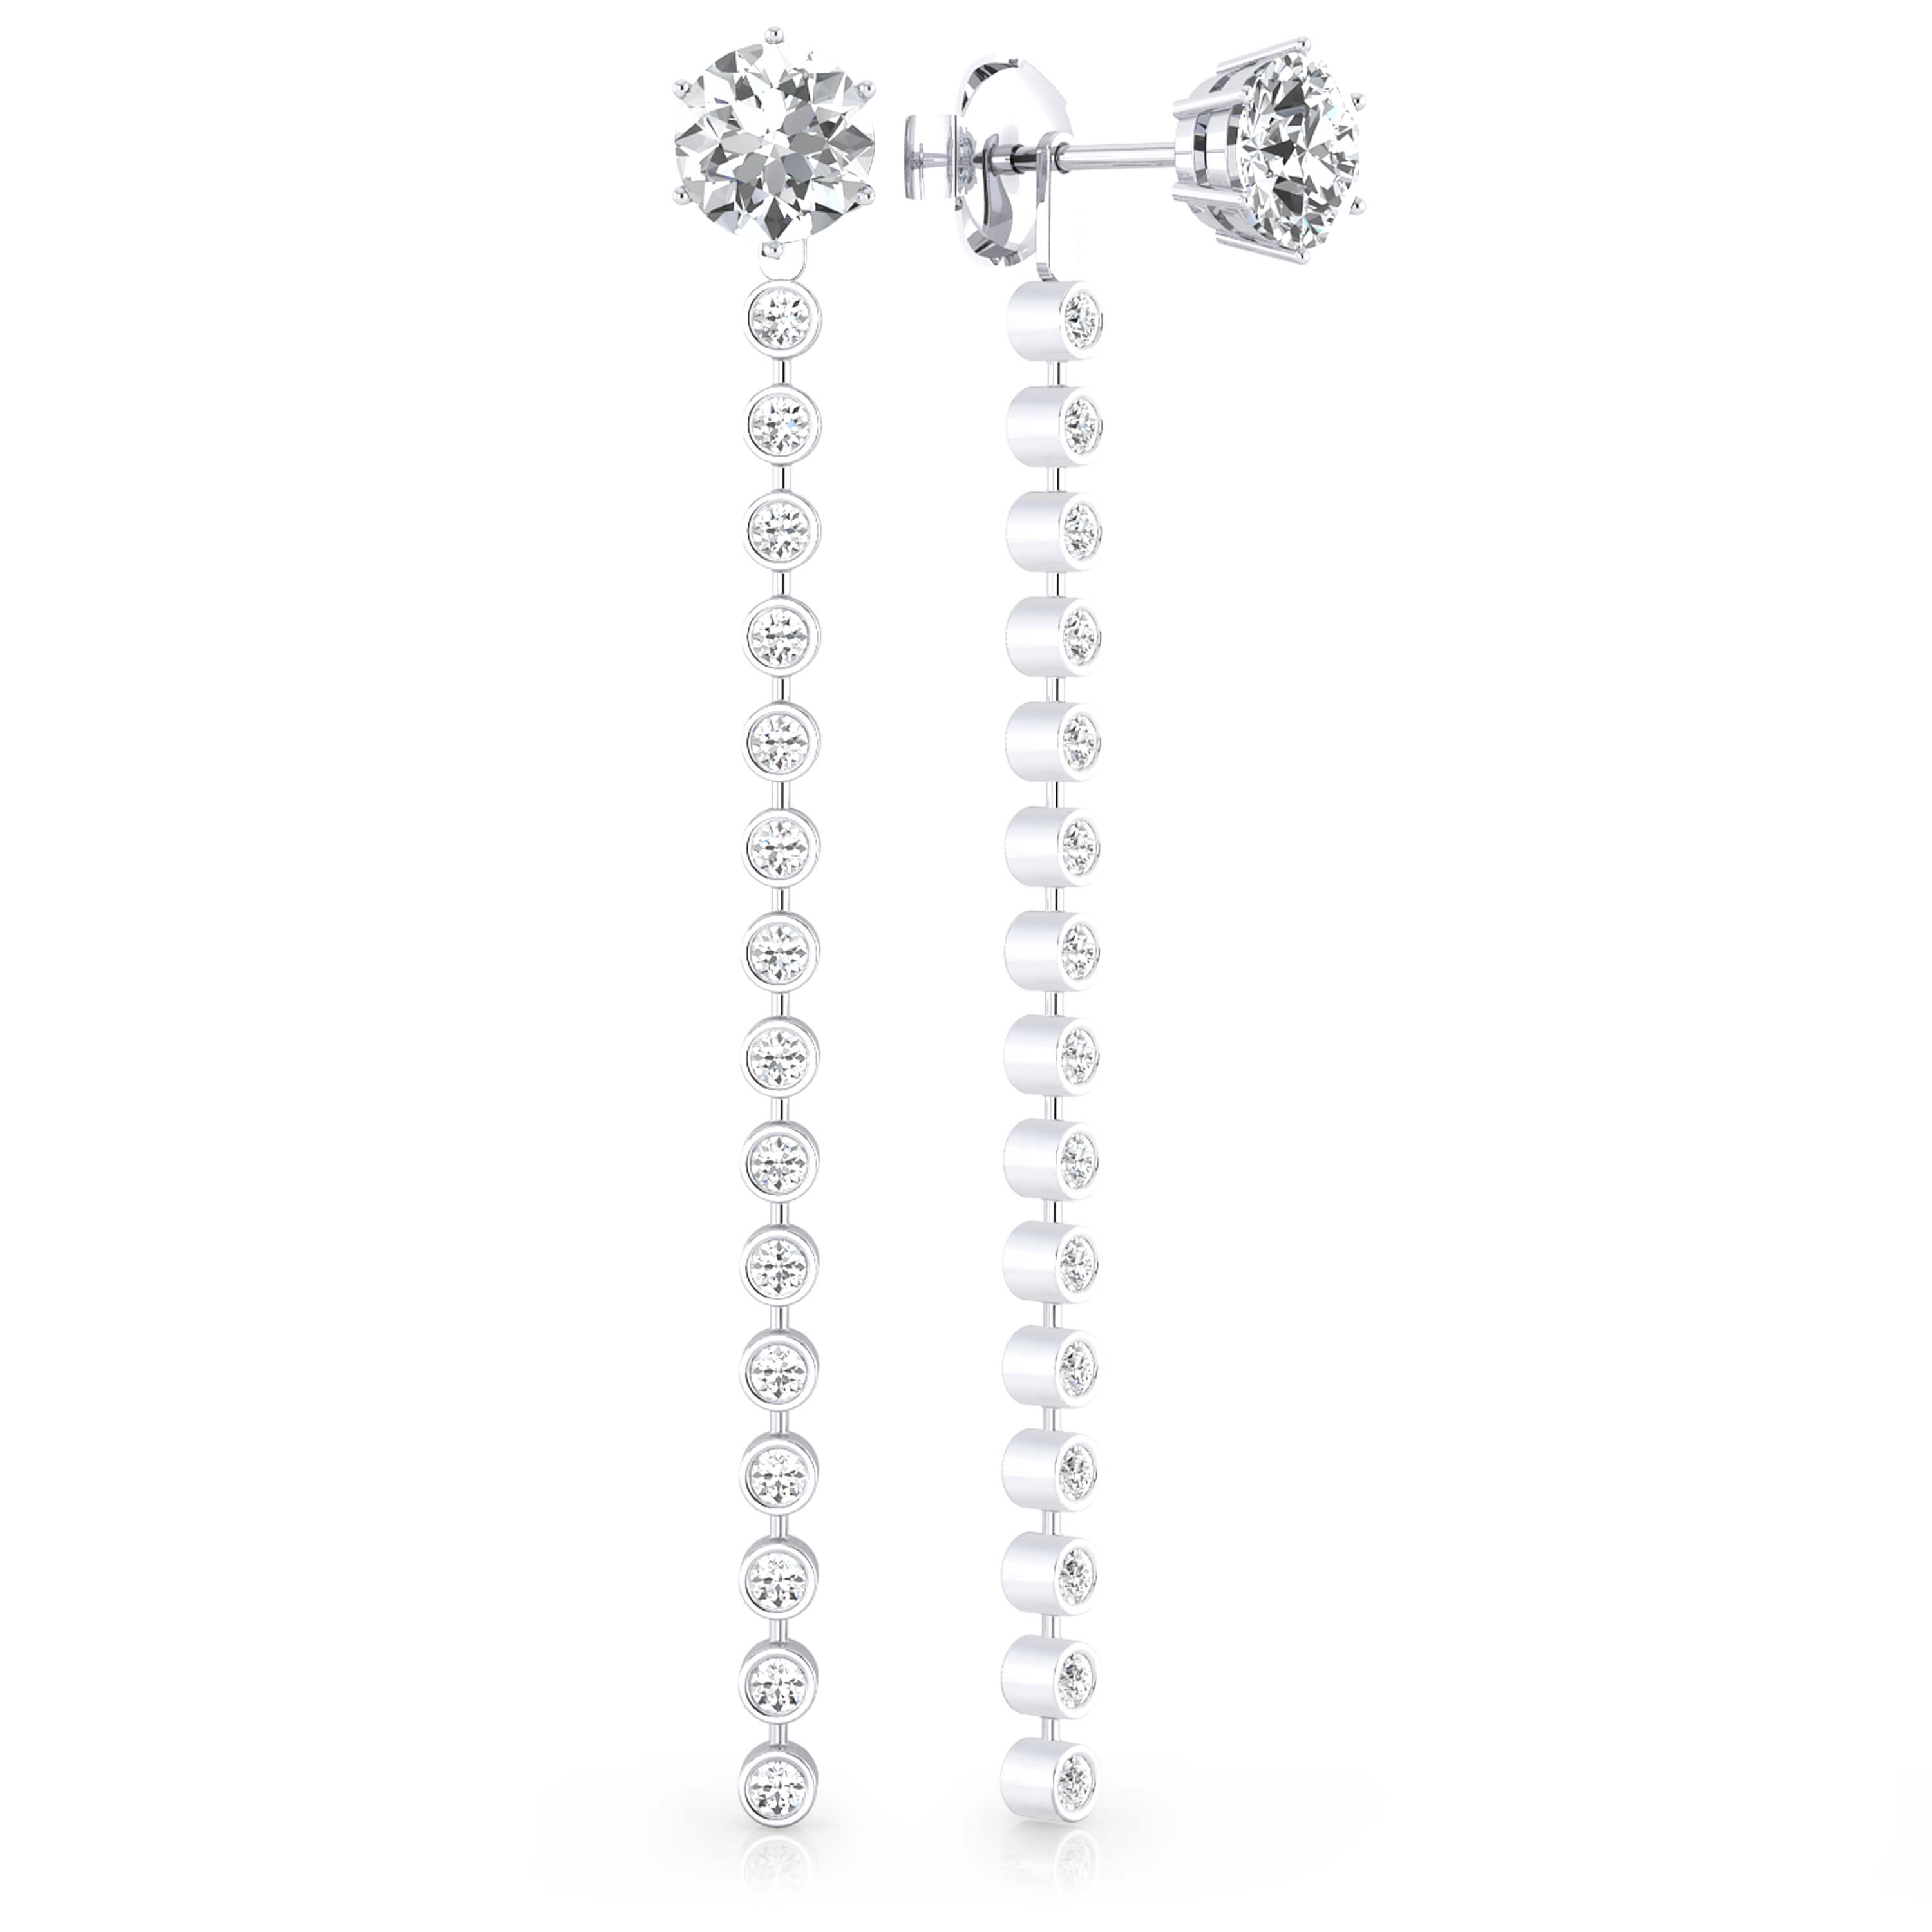 Earrings 18k white gold with 32 diamonds